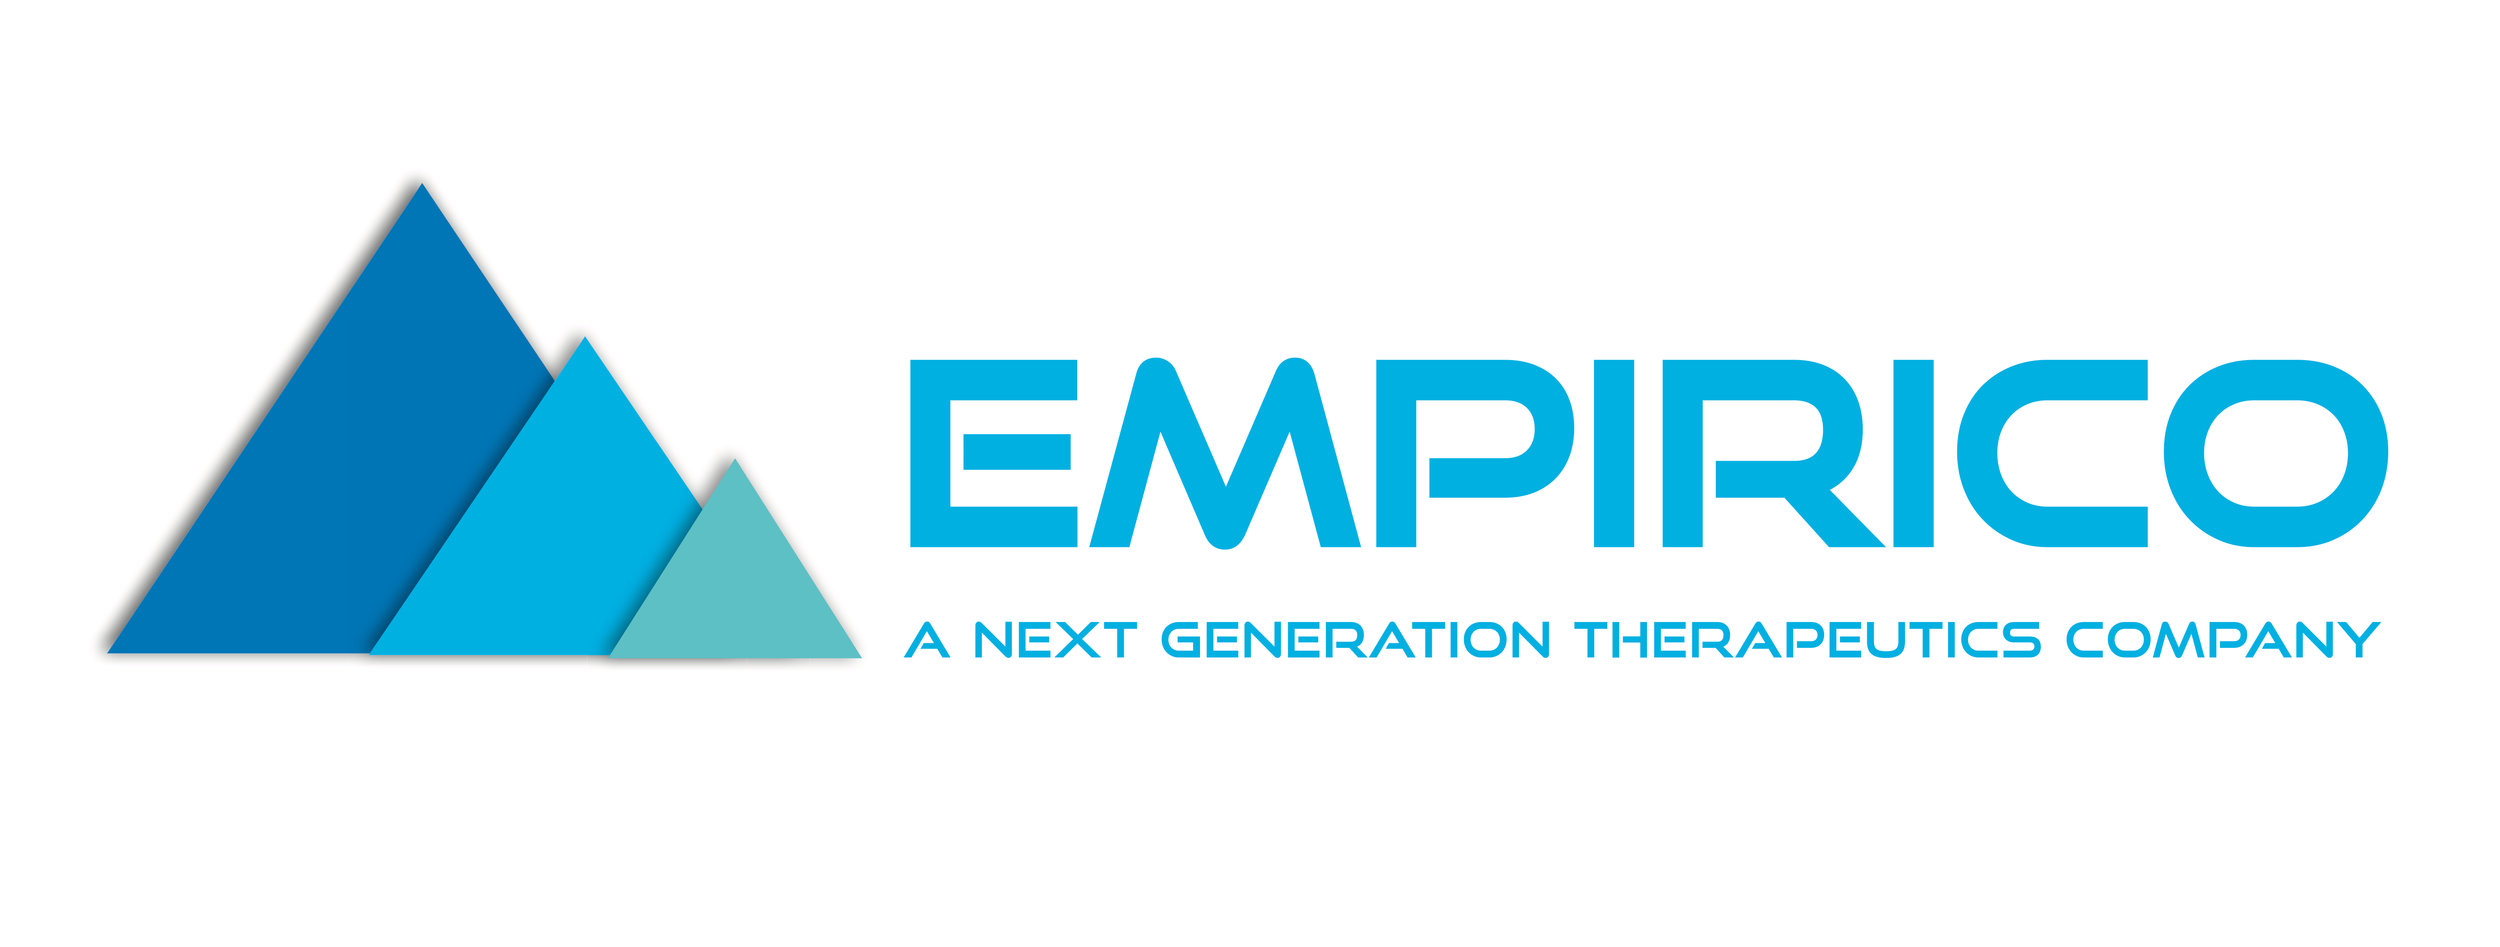 EMPIRICO: A next generation therapeutics company   A therapeutics company founded on using medical data sets, human genetics and programmable biology to power novel target discovery and development. Empirico's  Precision Insights Platform  was purpose-built for target discovery.  With it's proprietary algorithms, the platform enables Empirico's scientists to systematically generate, interrogate, and prioritize high-confidence therapeutic hypotheses.